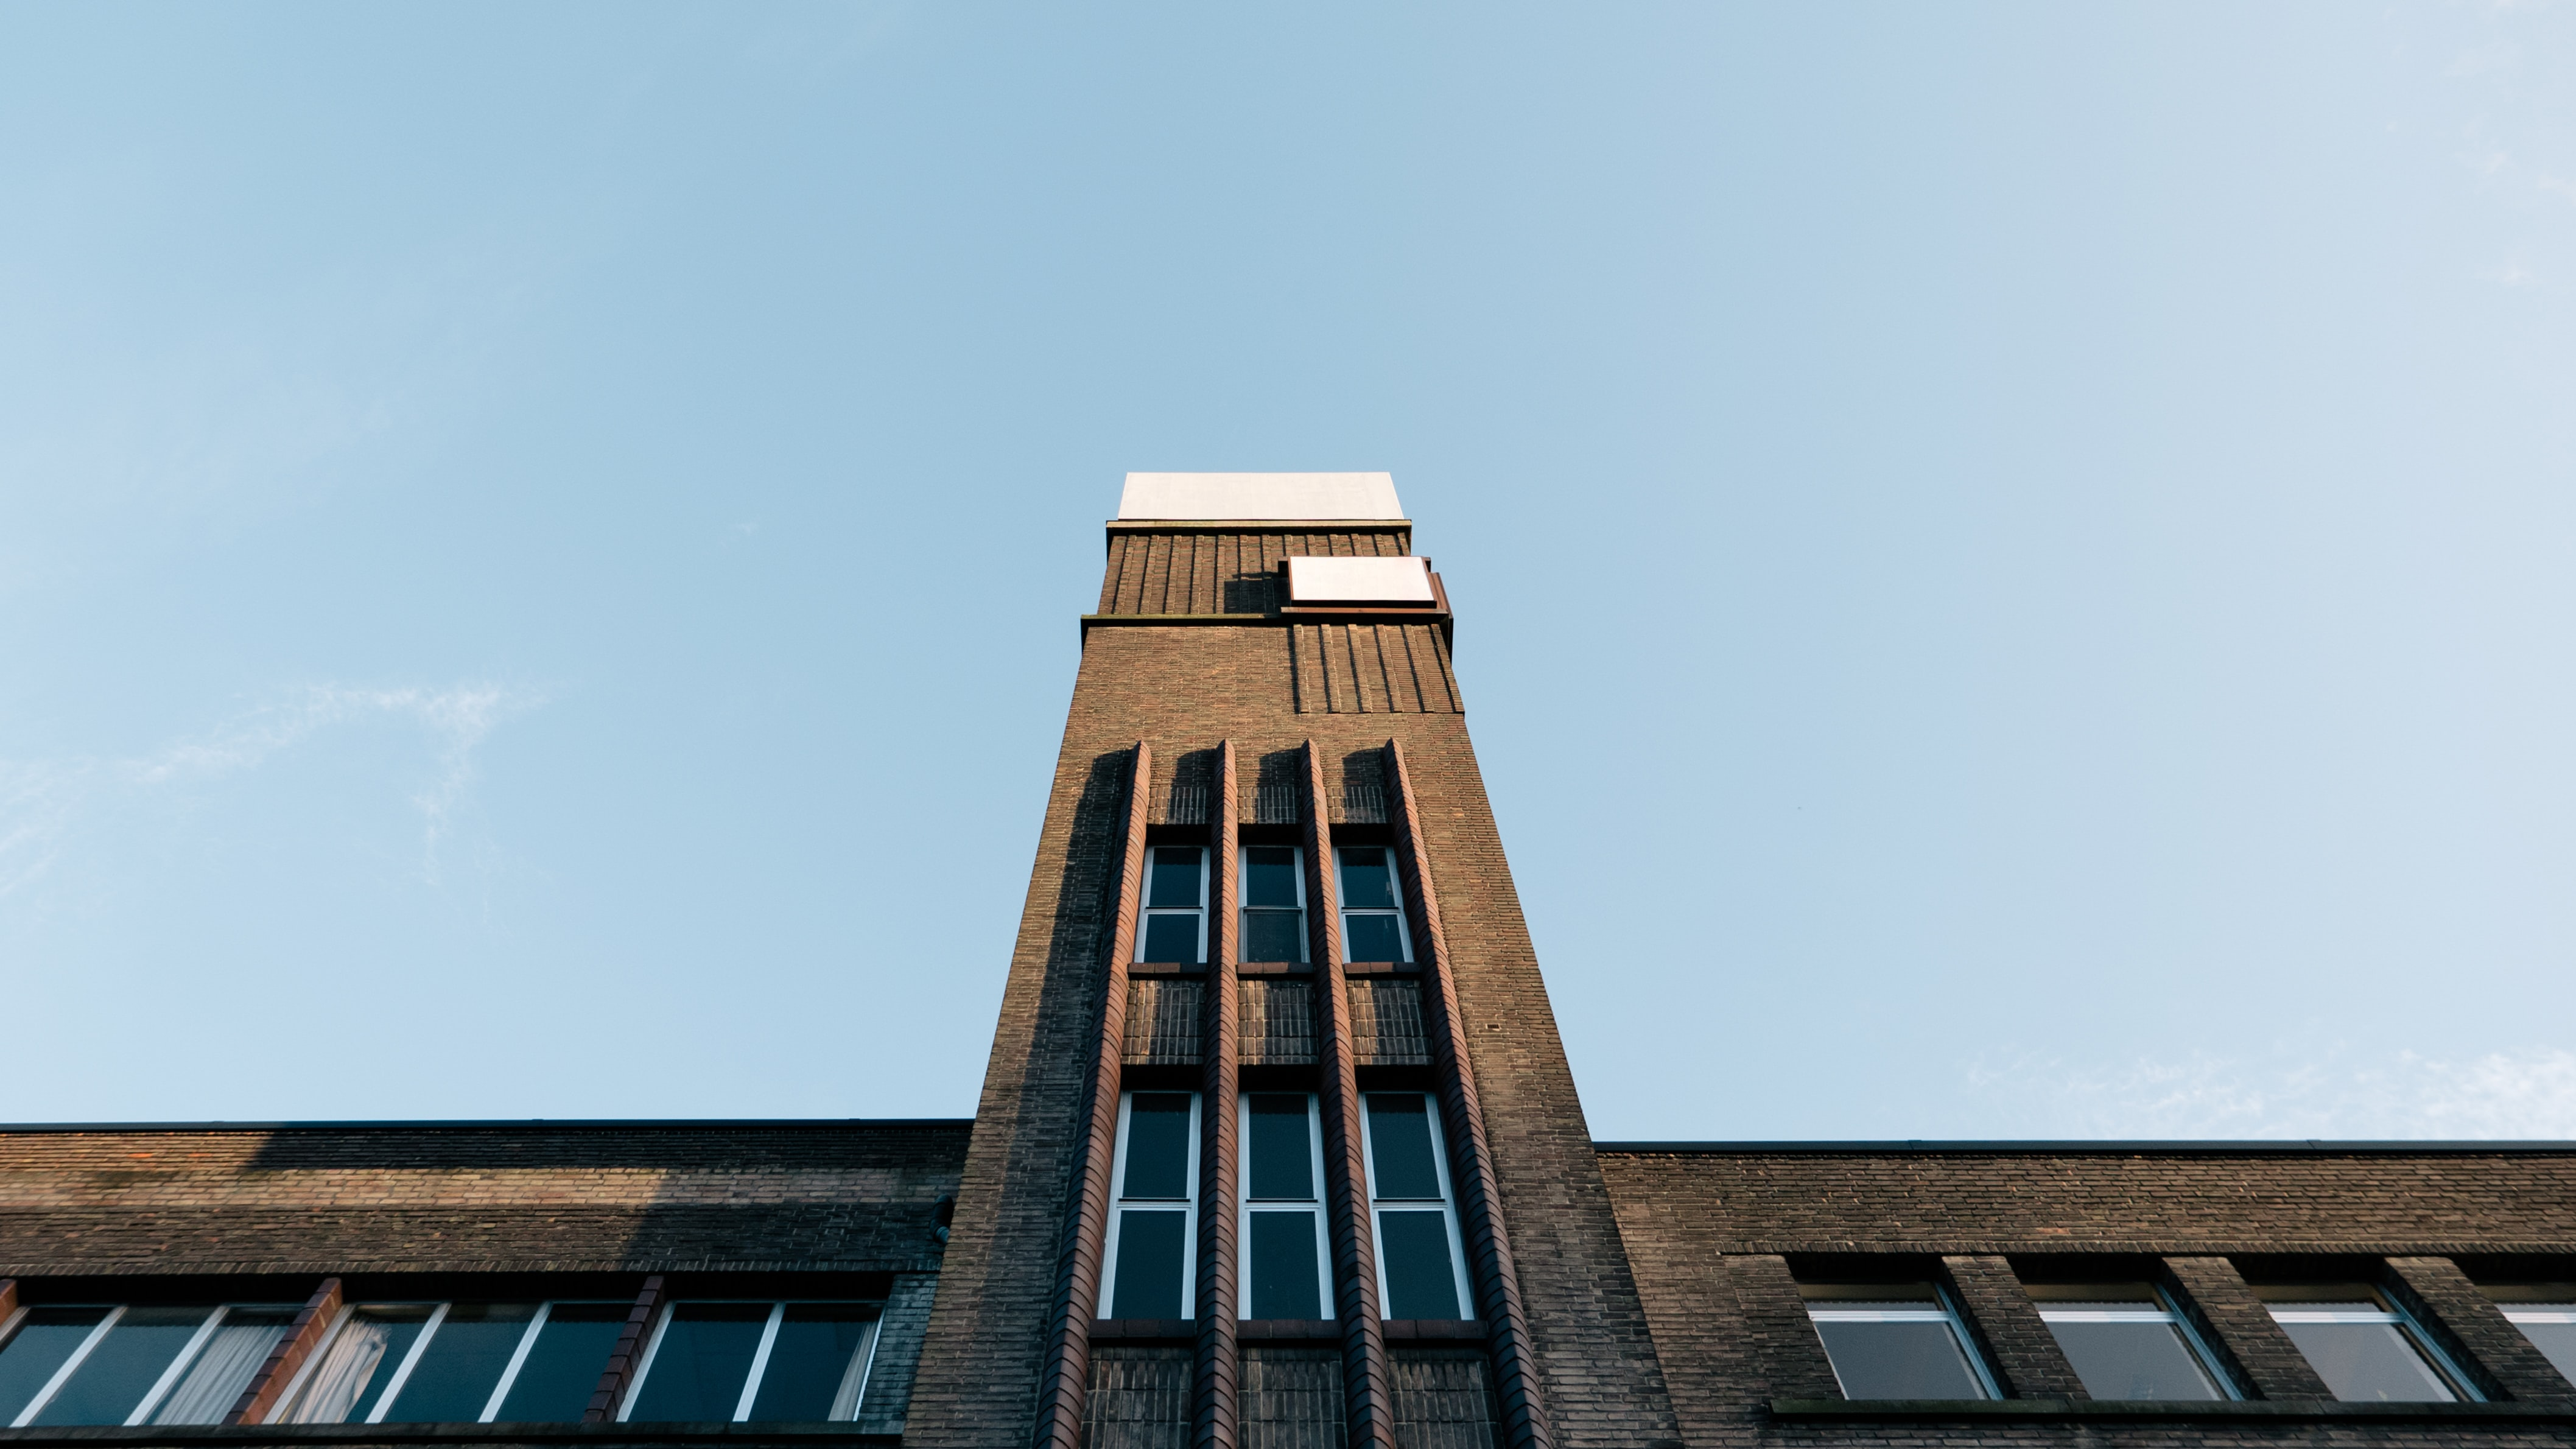 worm's-eye view of concrete building